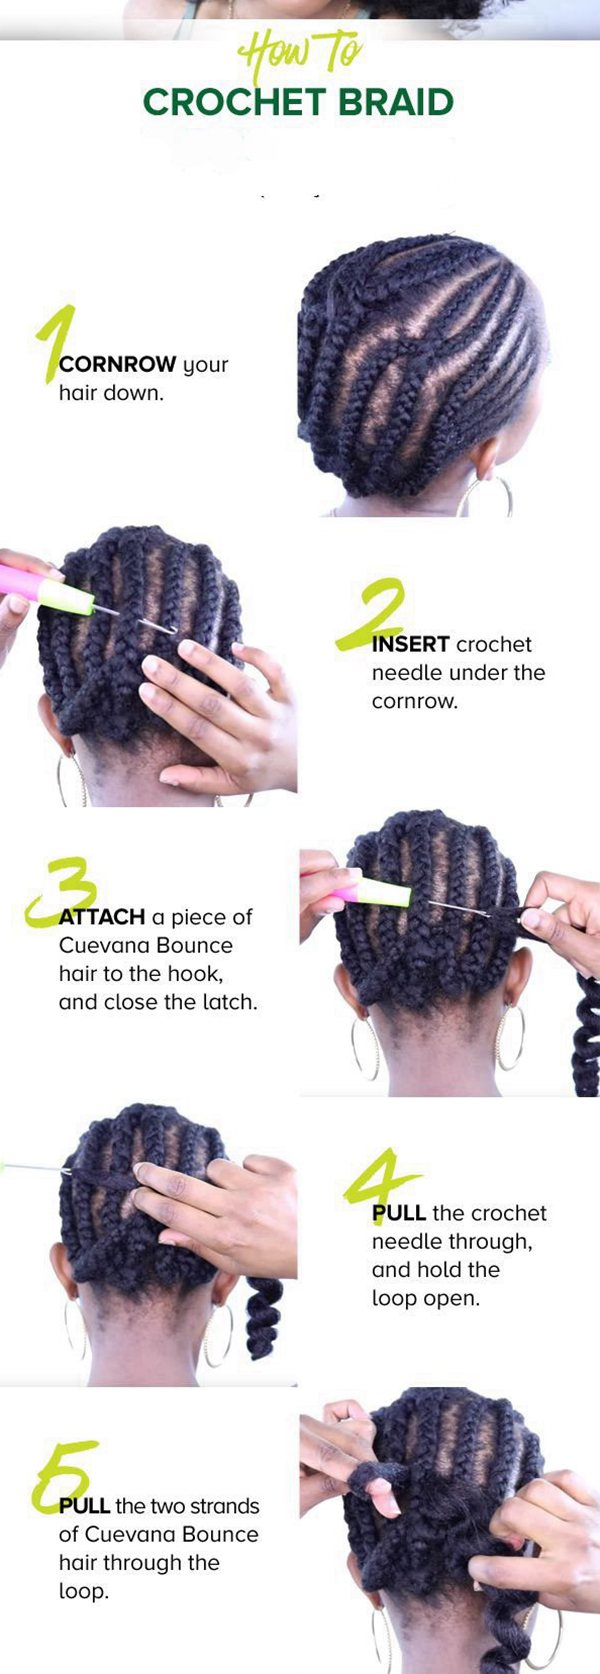 How to apply crochet hair